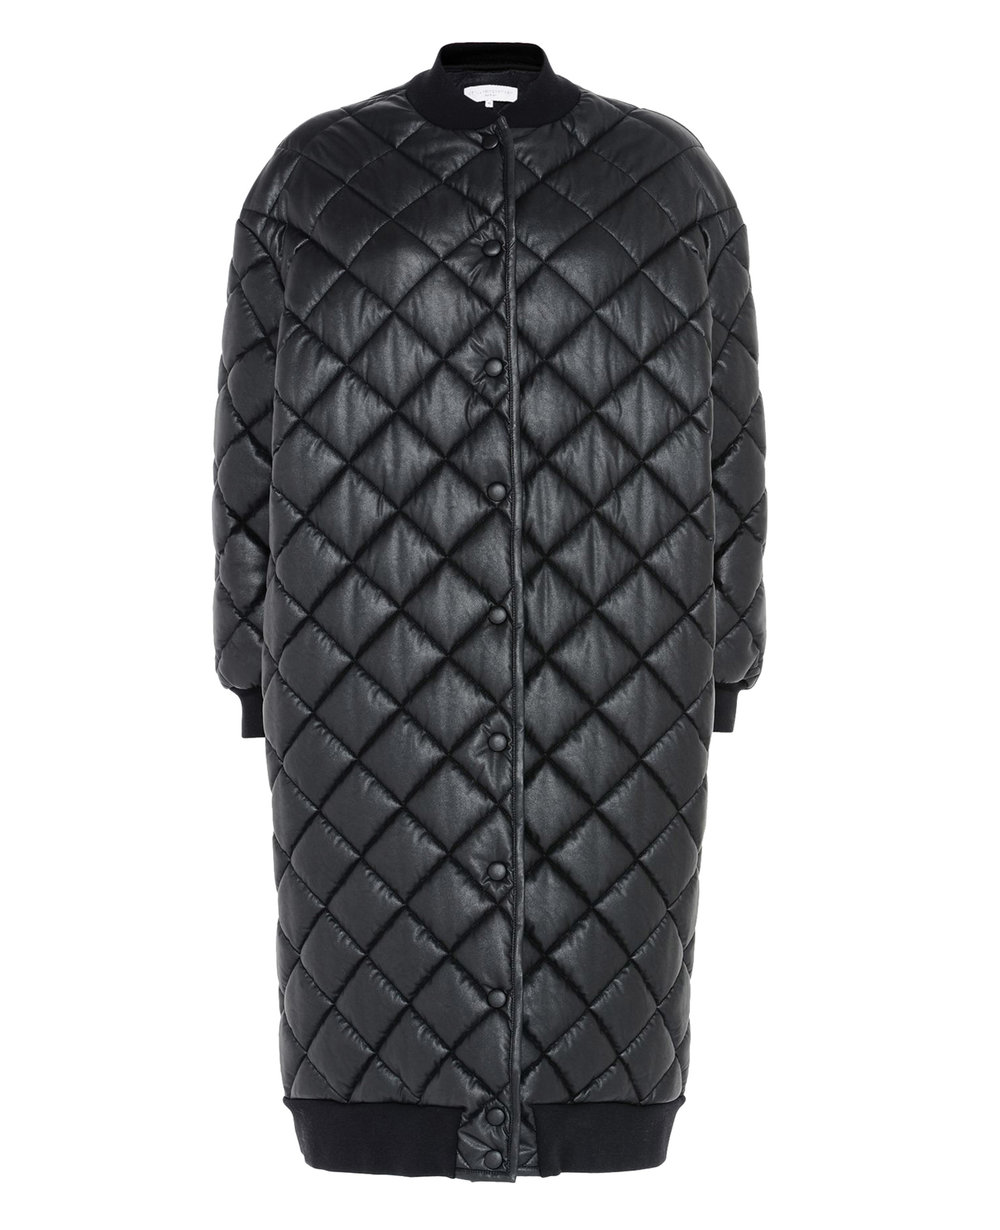 Stella McCartney Marissa Coat US$1,825